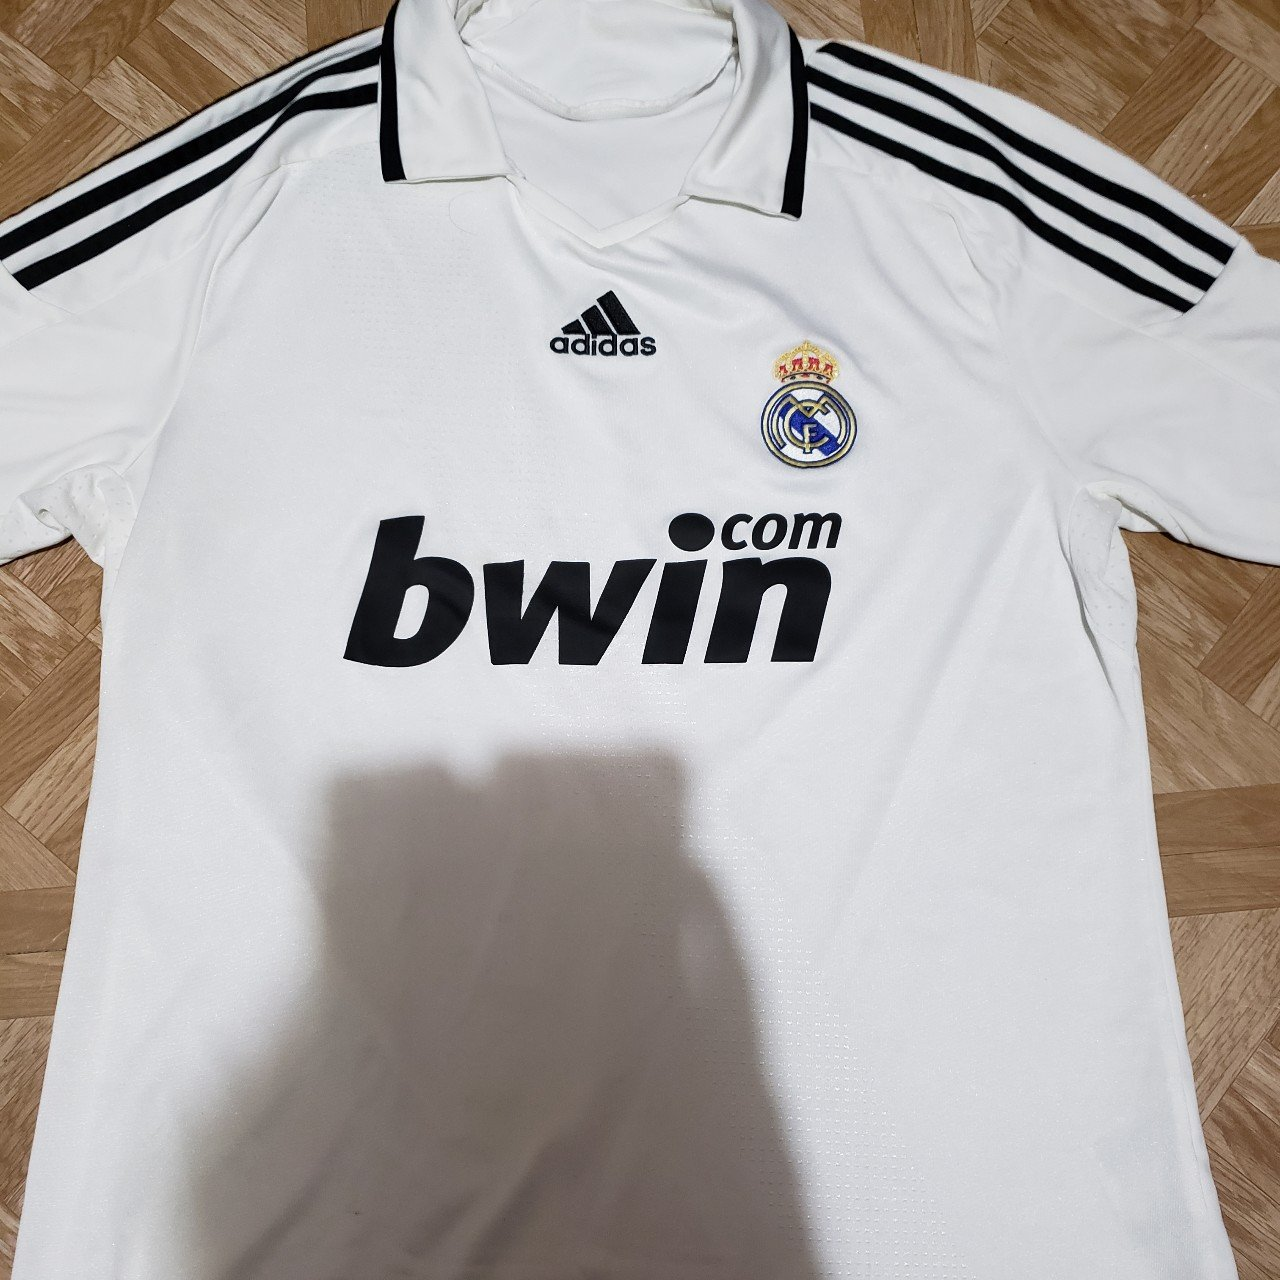 4cce614c4 Adidas Real Madrid soccer jersey size L  adidas  soccer - Depop